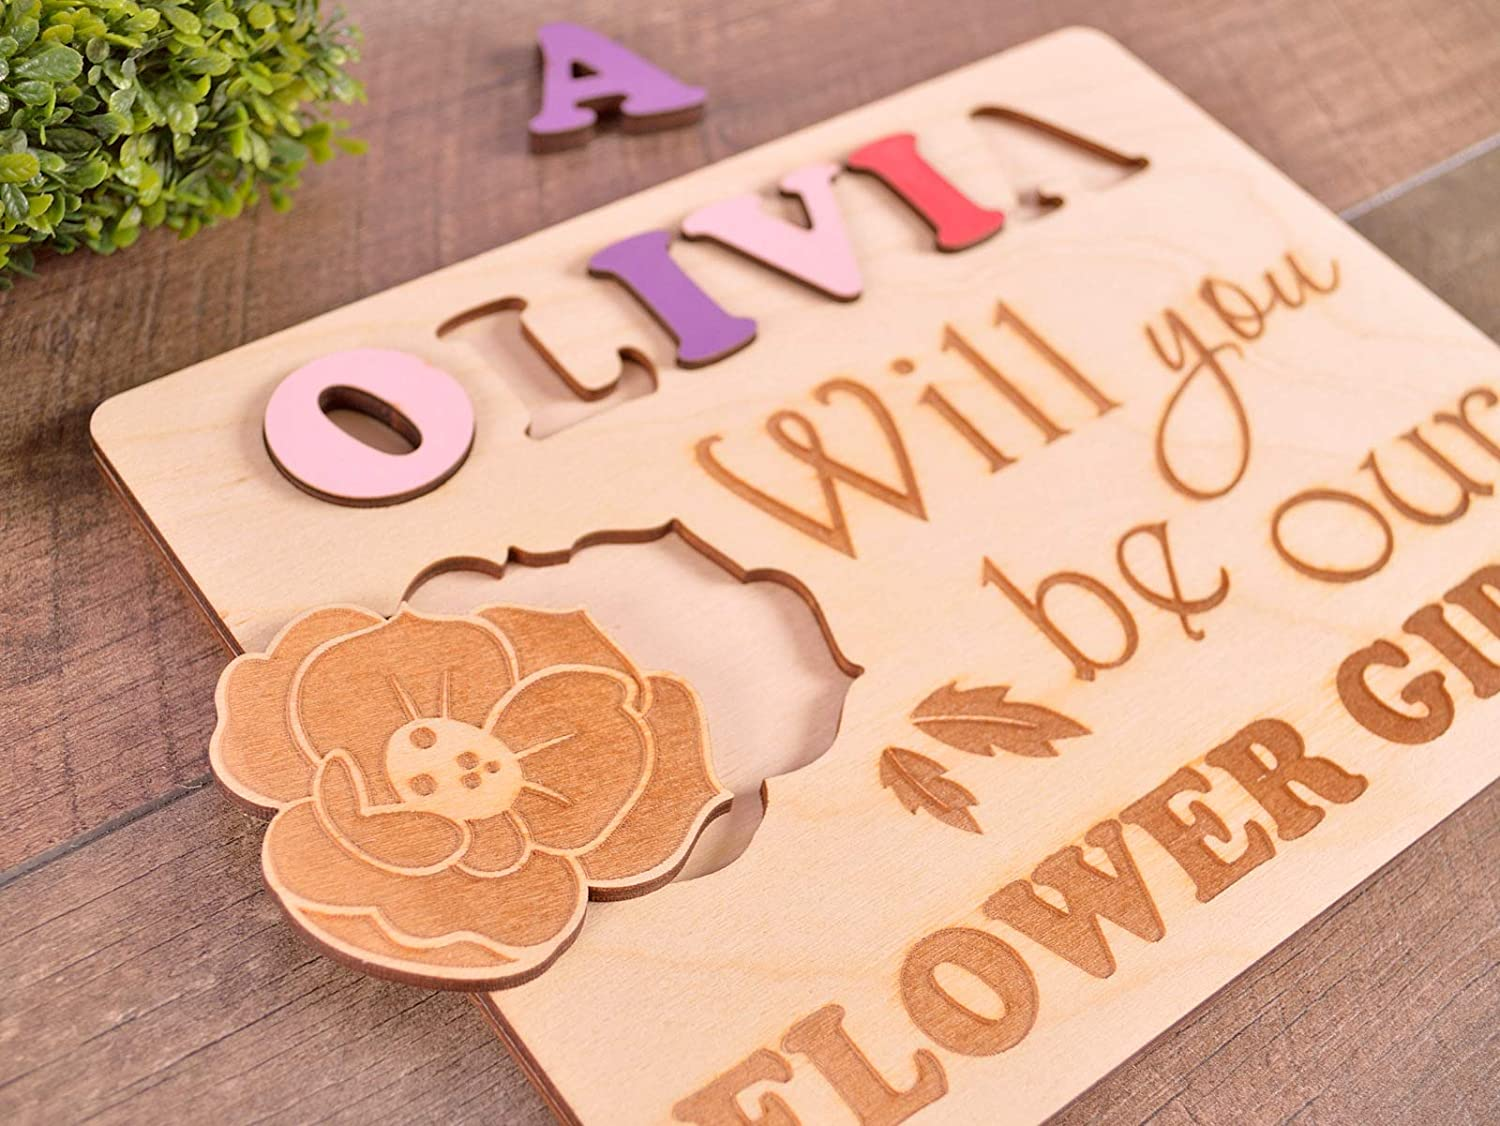 Flower girl proposal Page Boy Gifts Will you be our flower girl gift